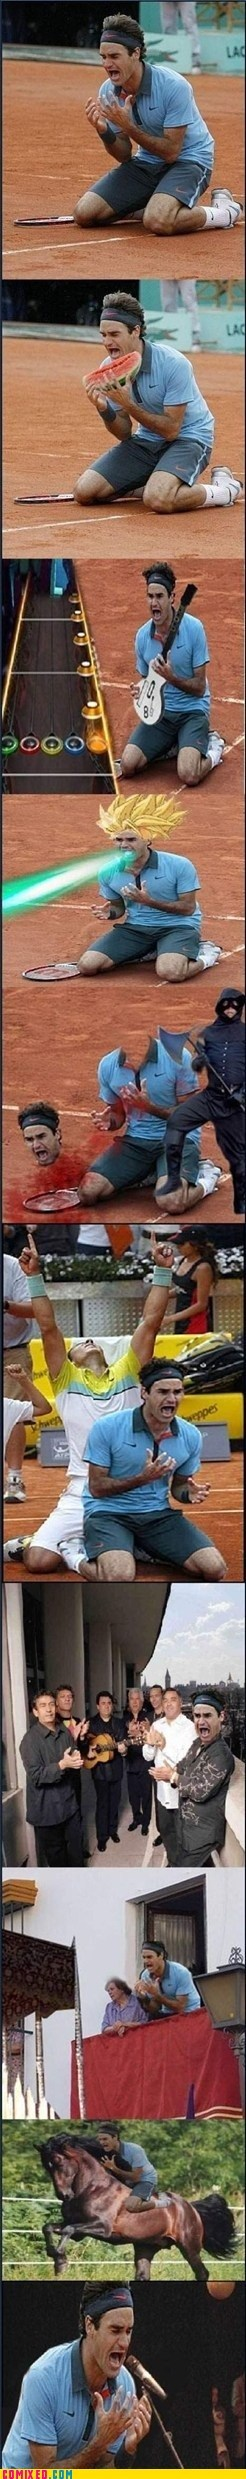 best of week comic Reframe roger federer tennis the internets why - 5937041152